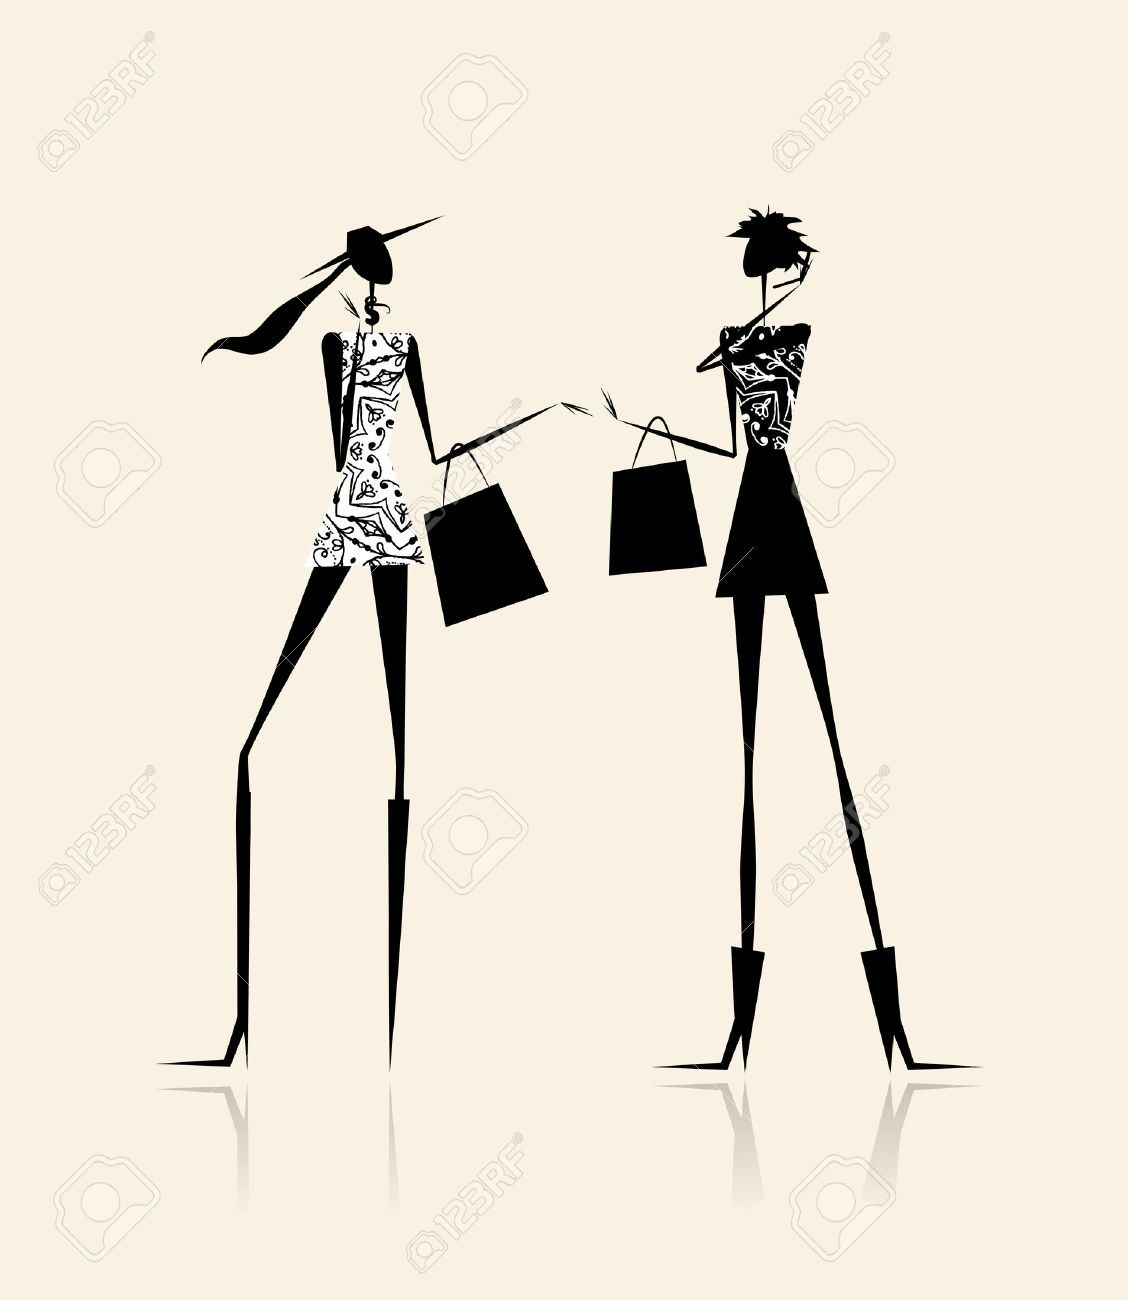 11476137 Fashion Girls With Shopping Bags Illustration For Your